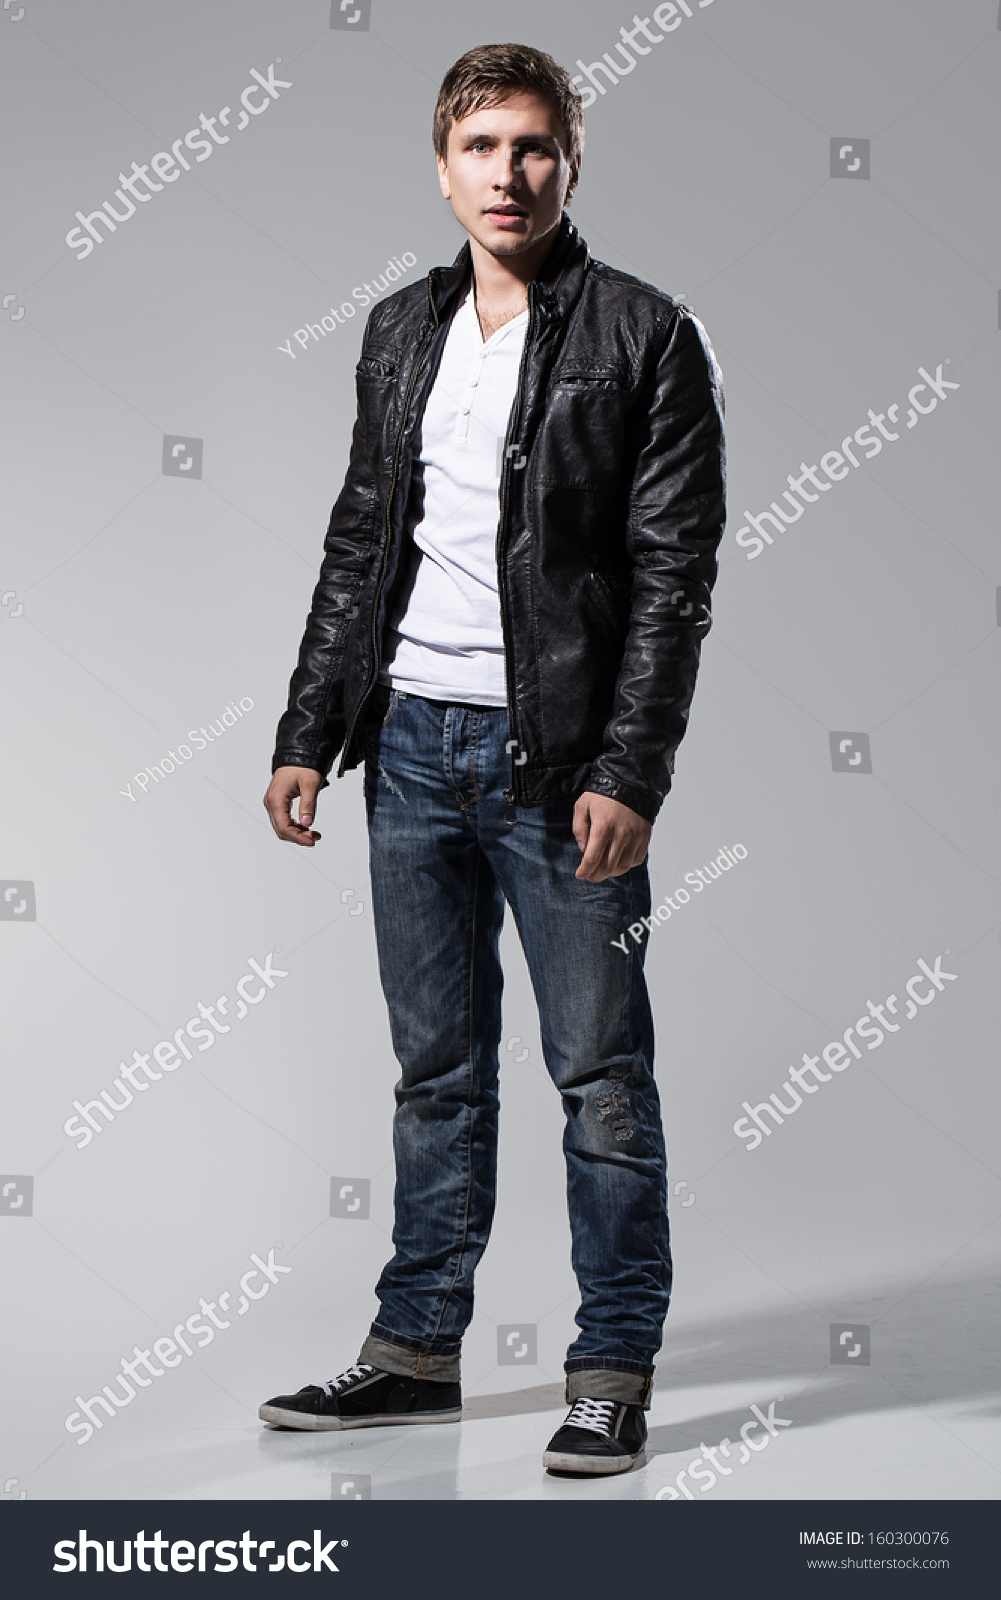 Handsome Man Leather Jacket Jeans White Stock Photo 160300076 ...